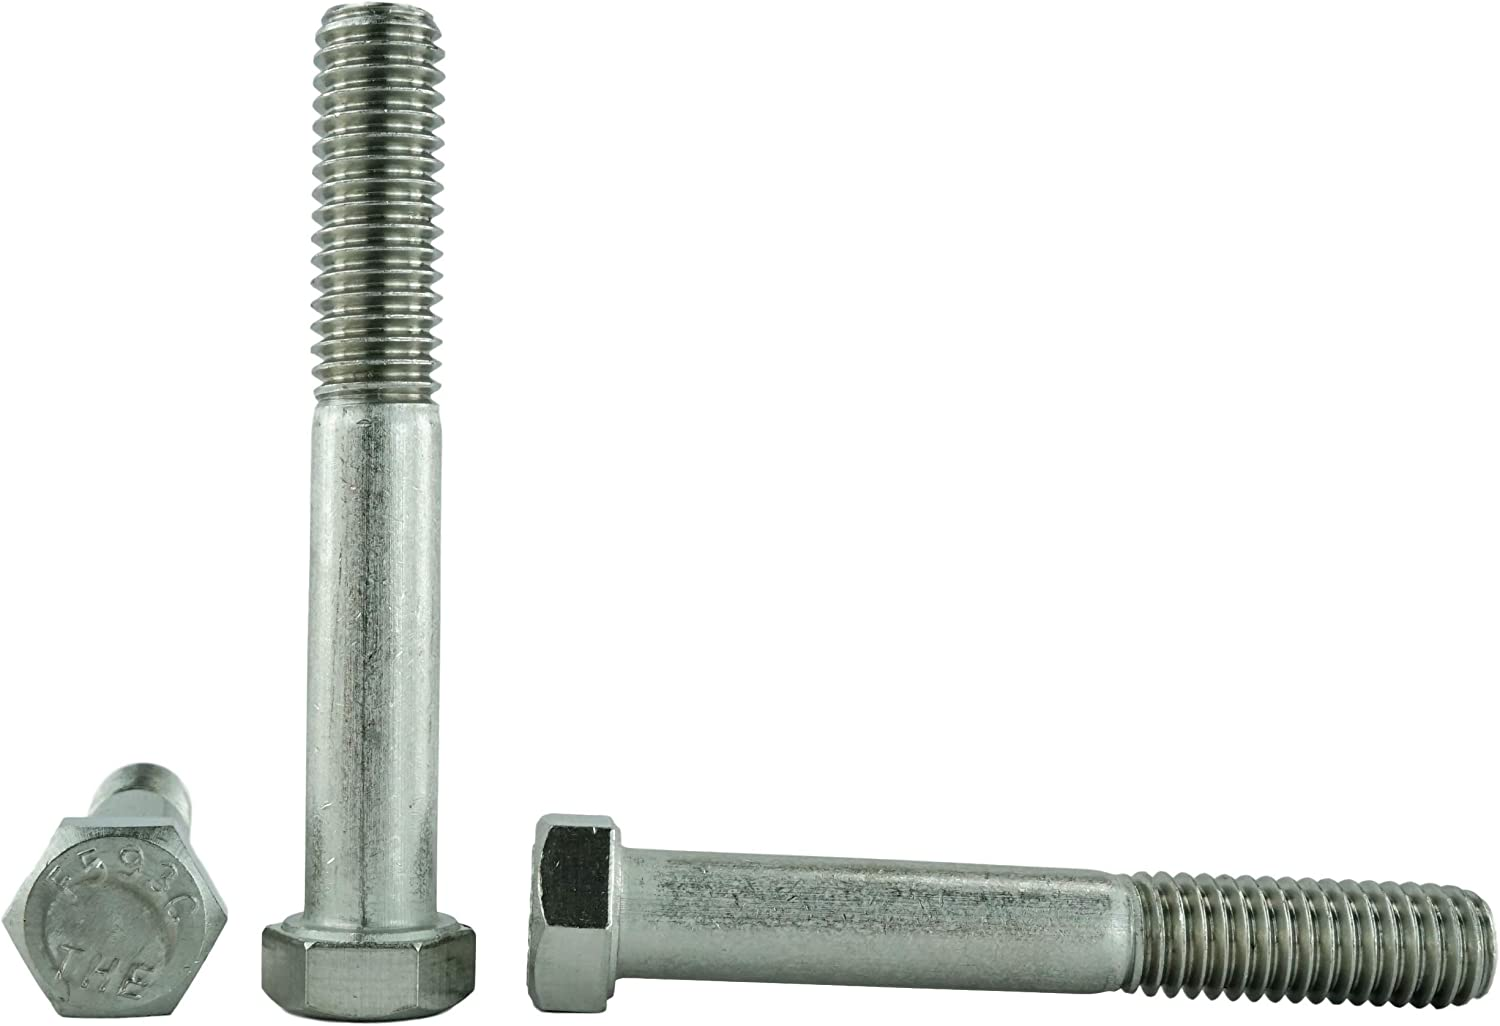 3//4 To 5 Lengths Available in Listing 7//16-14 x 3 10 pieces 304 Stainless Steel Stainless 7//16-14 x 3 Hex Head Bolts